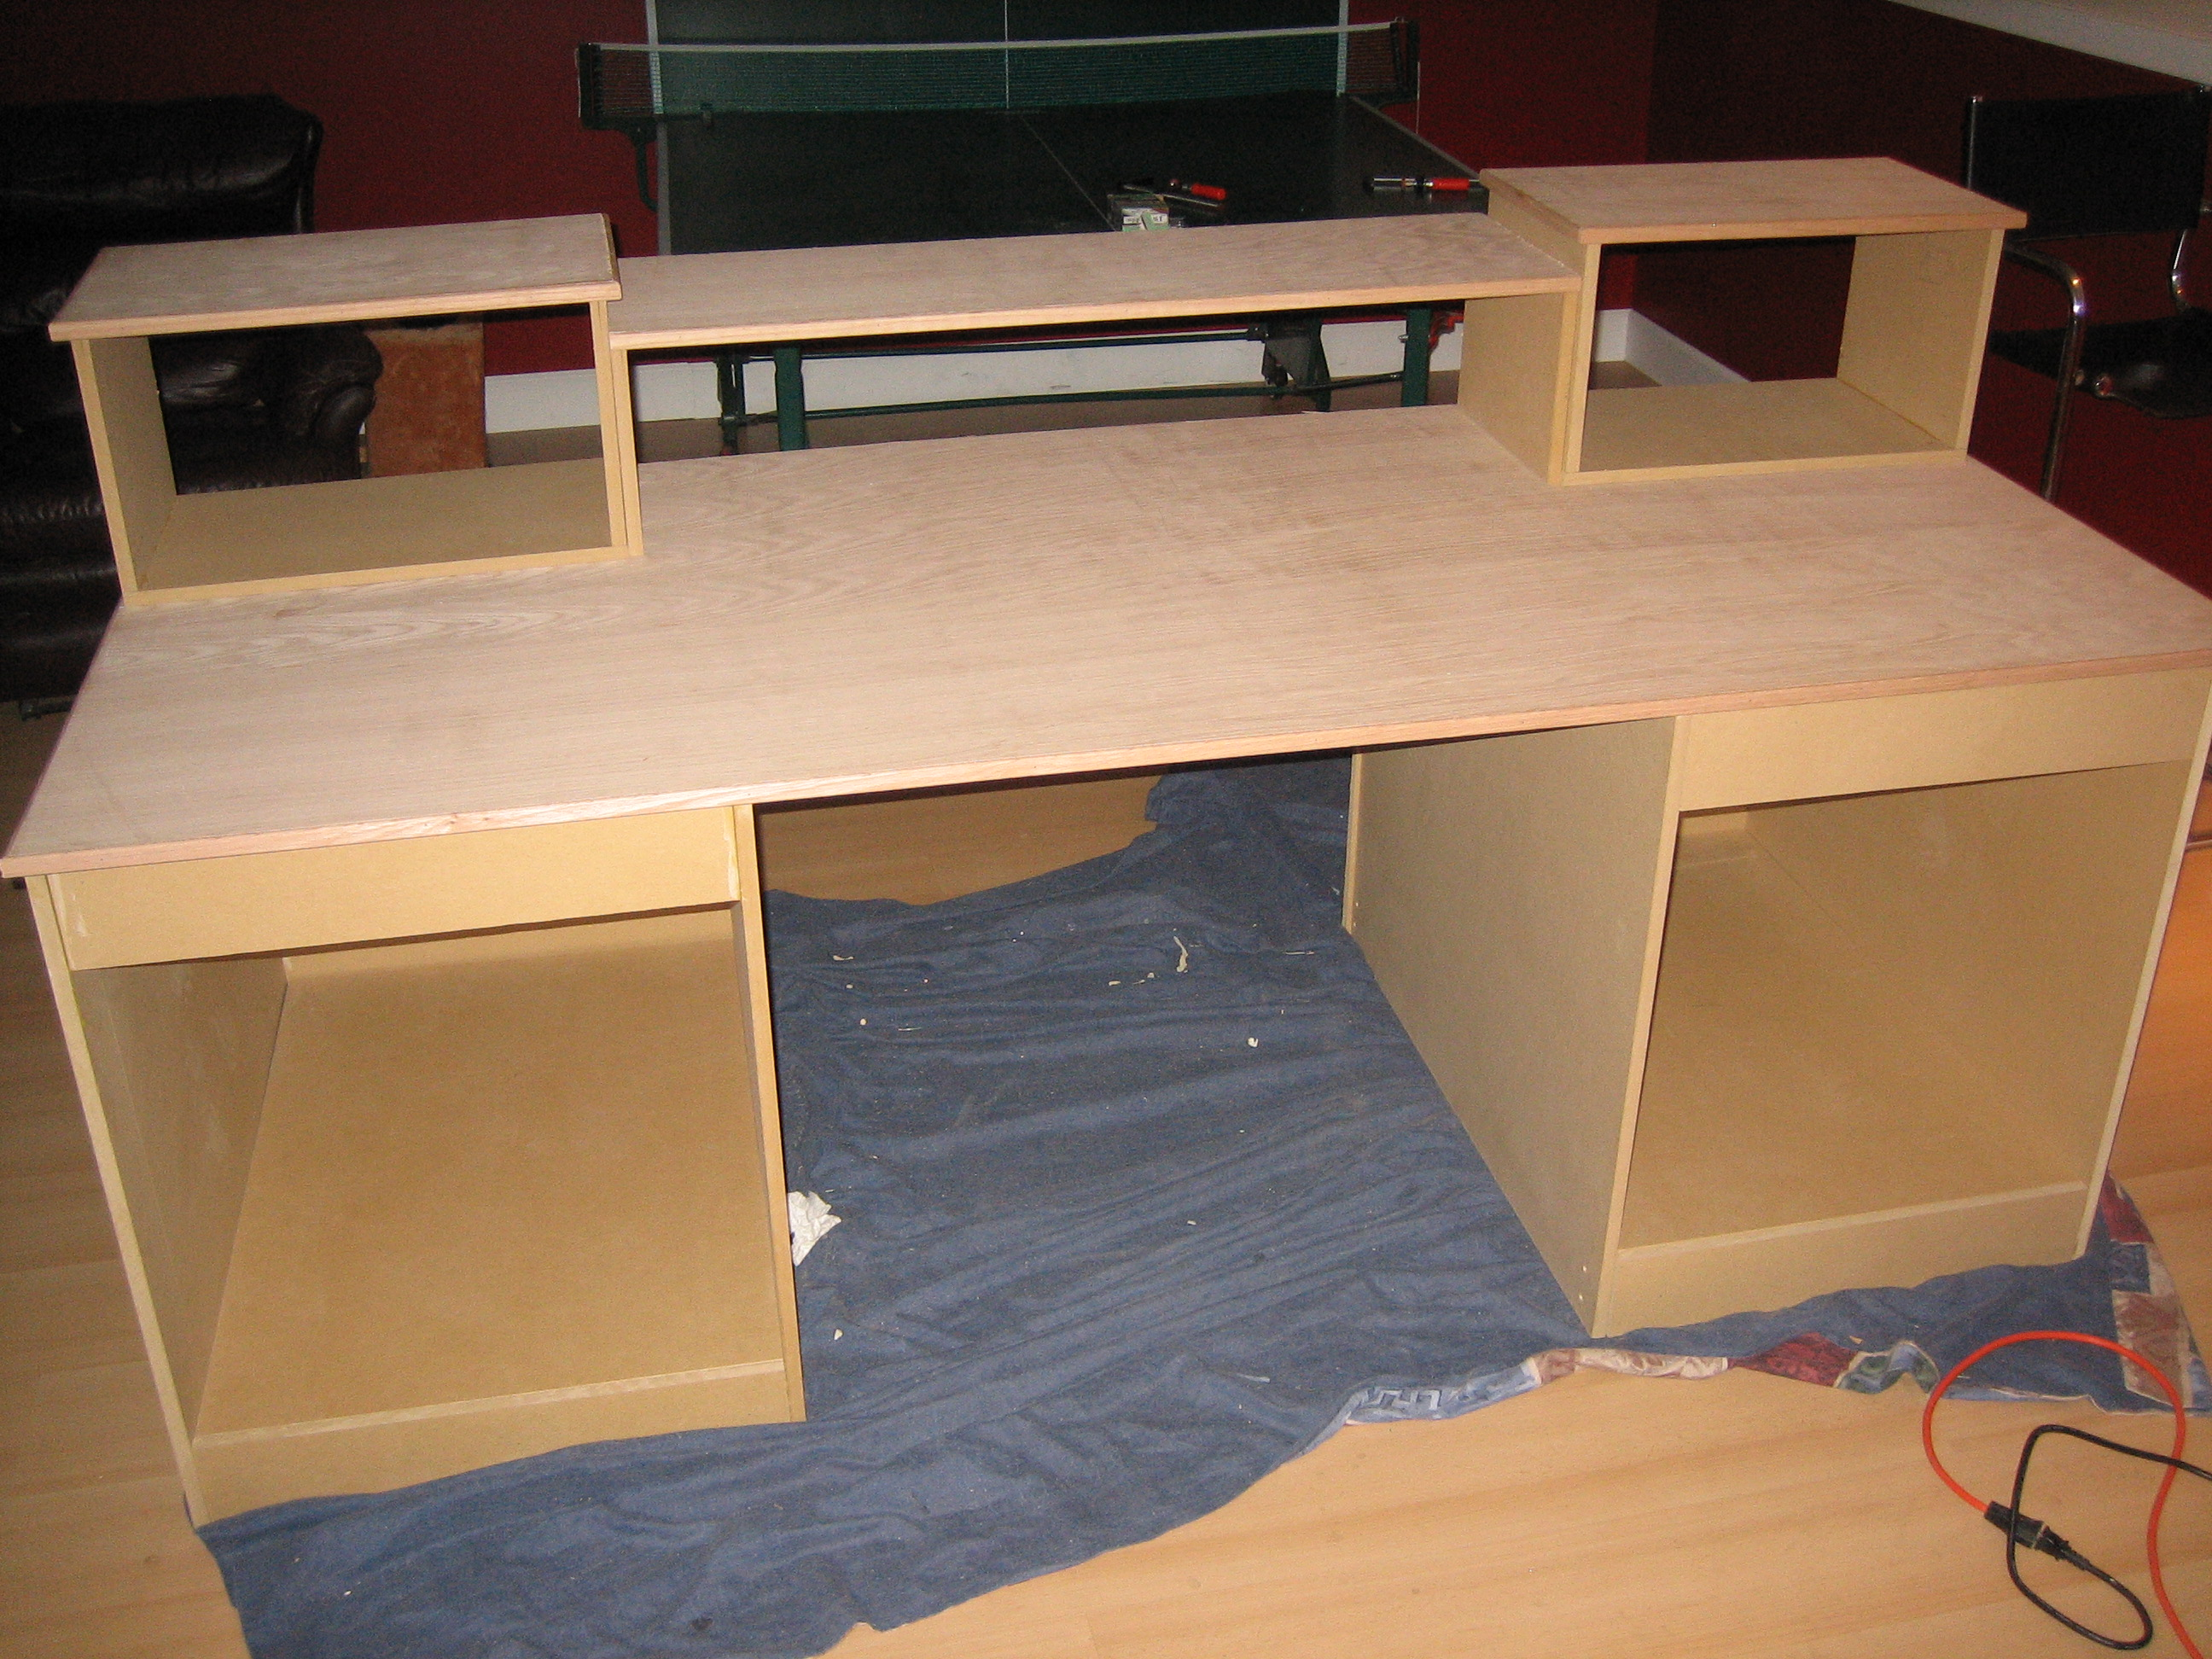 Woodworking build a desk PDF Free Download